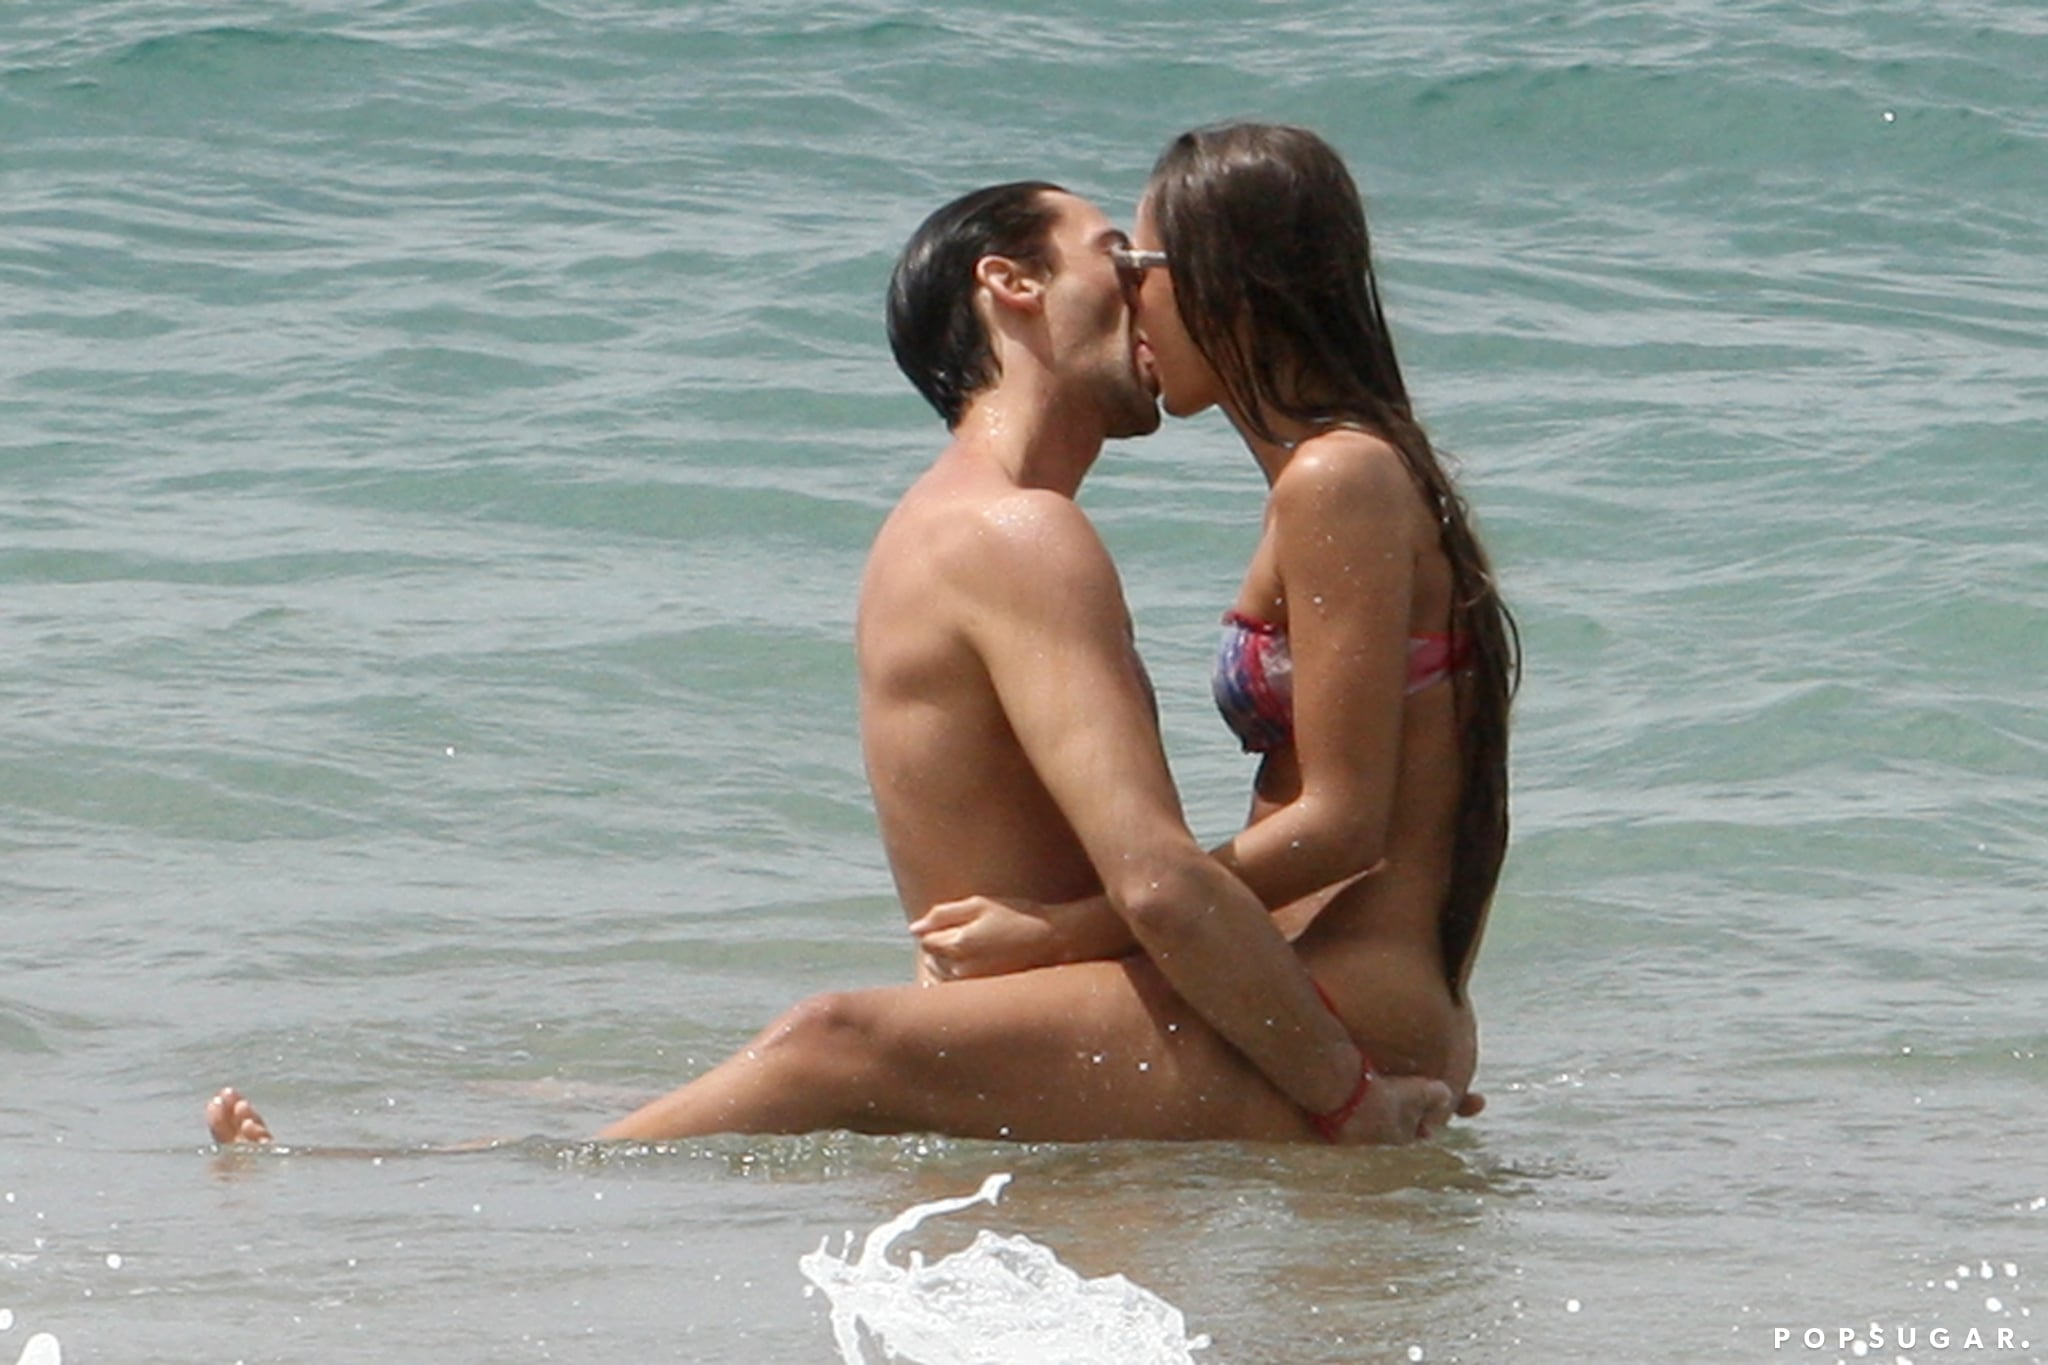 Things got hot and heavy for Adrien Brody and his girlfriend during a March 2013 trip to Hawaii.